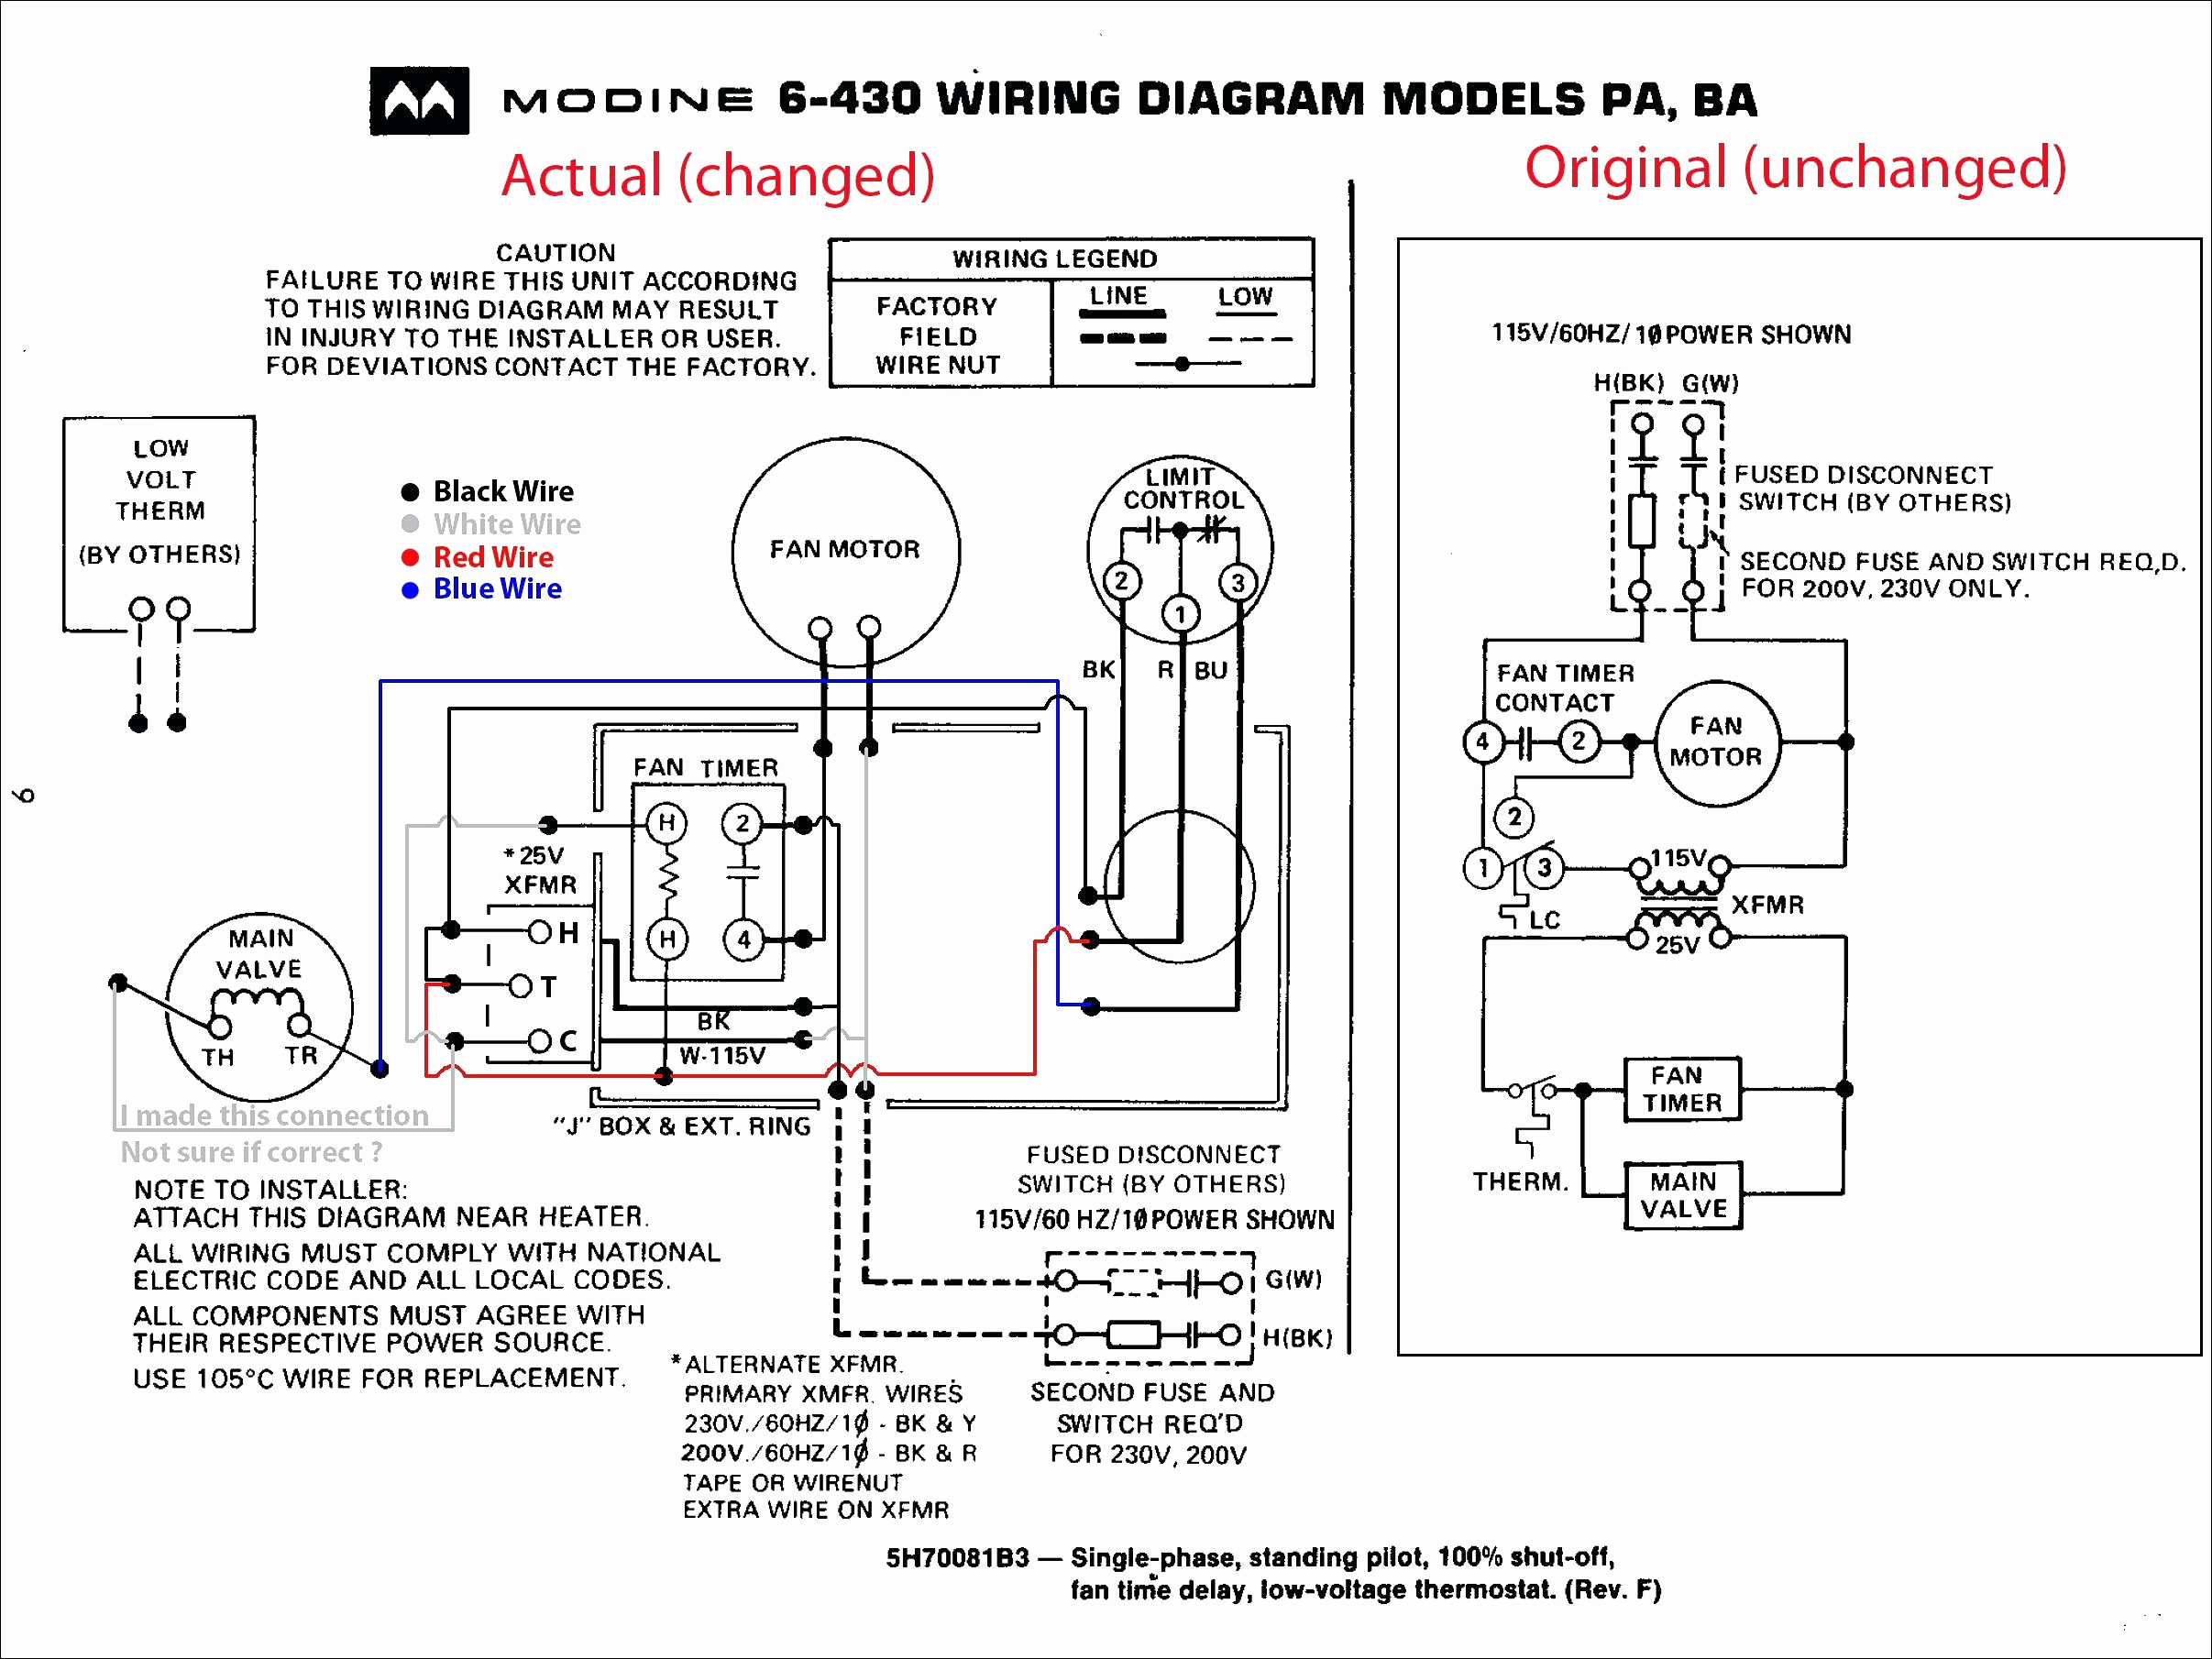 modine gas heater wiring diagram Collection-Modine Heater Parts Diagram for Amazing Trane Gas Furnace Wiring Diagram Image Electrical Diagram 12-c